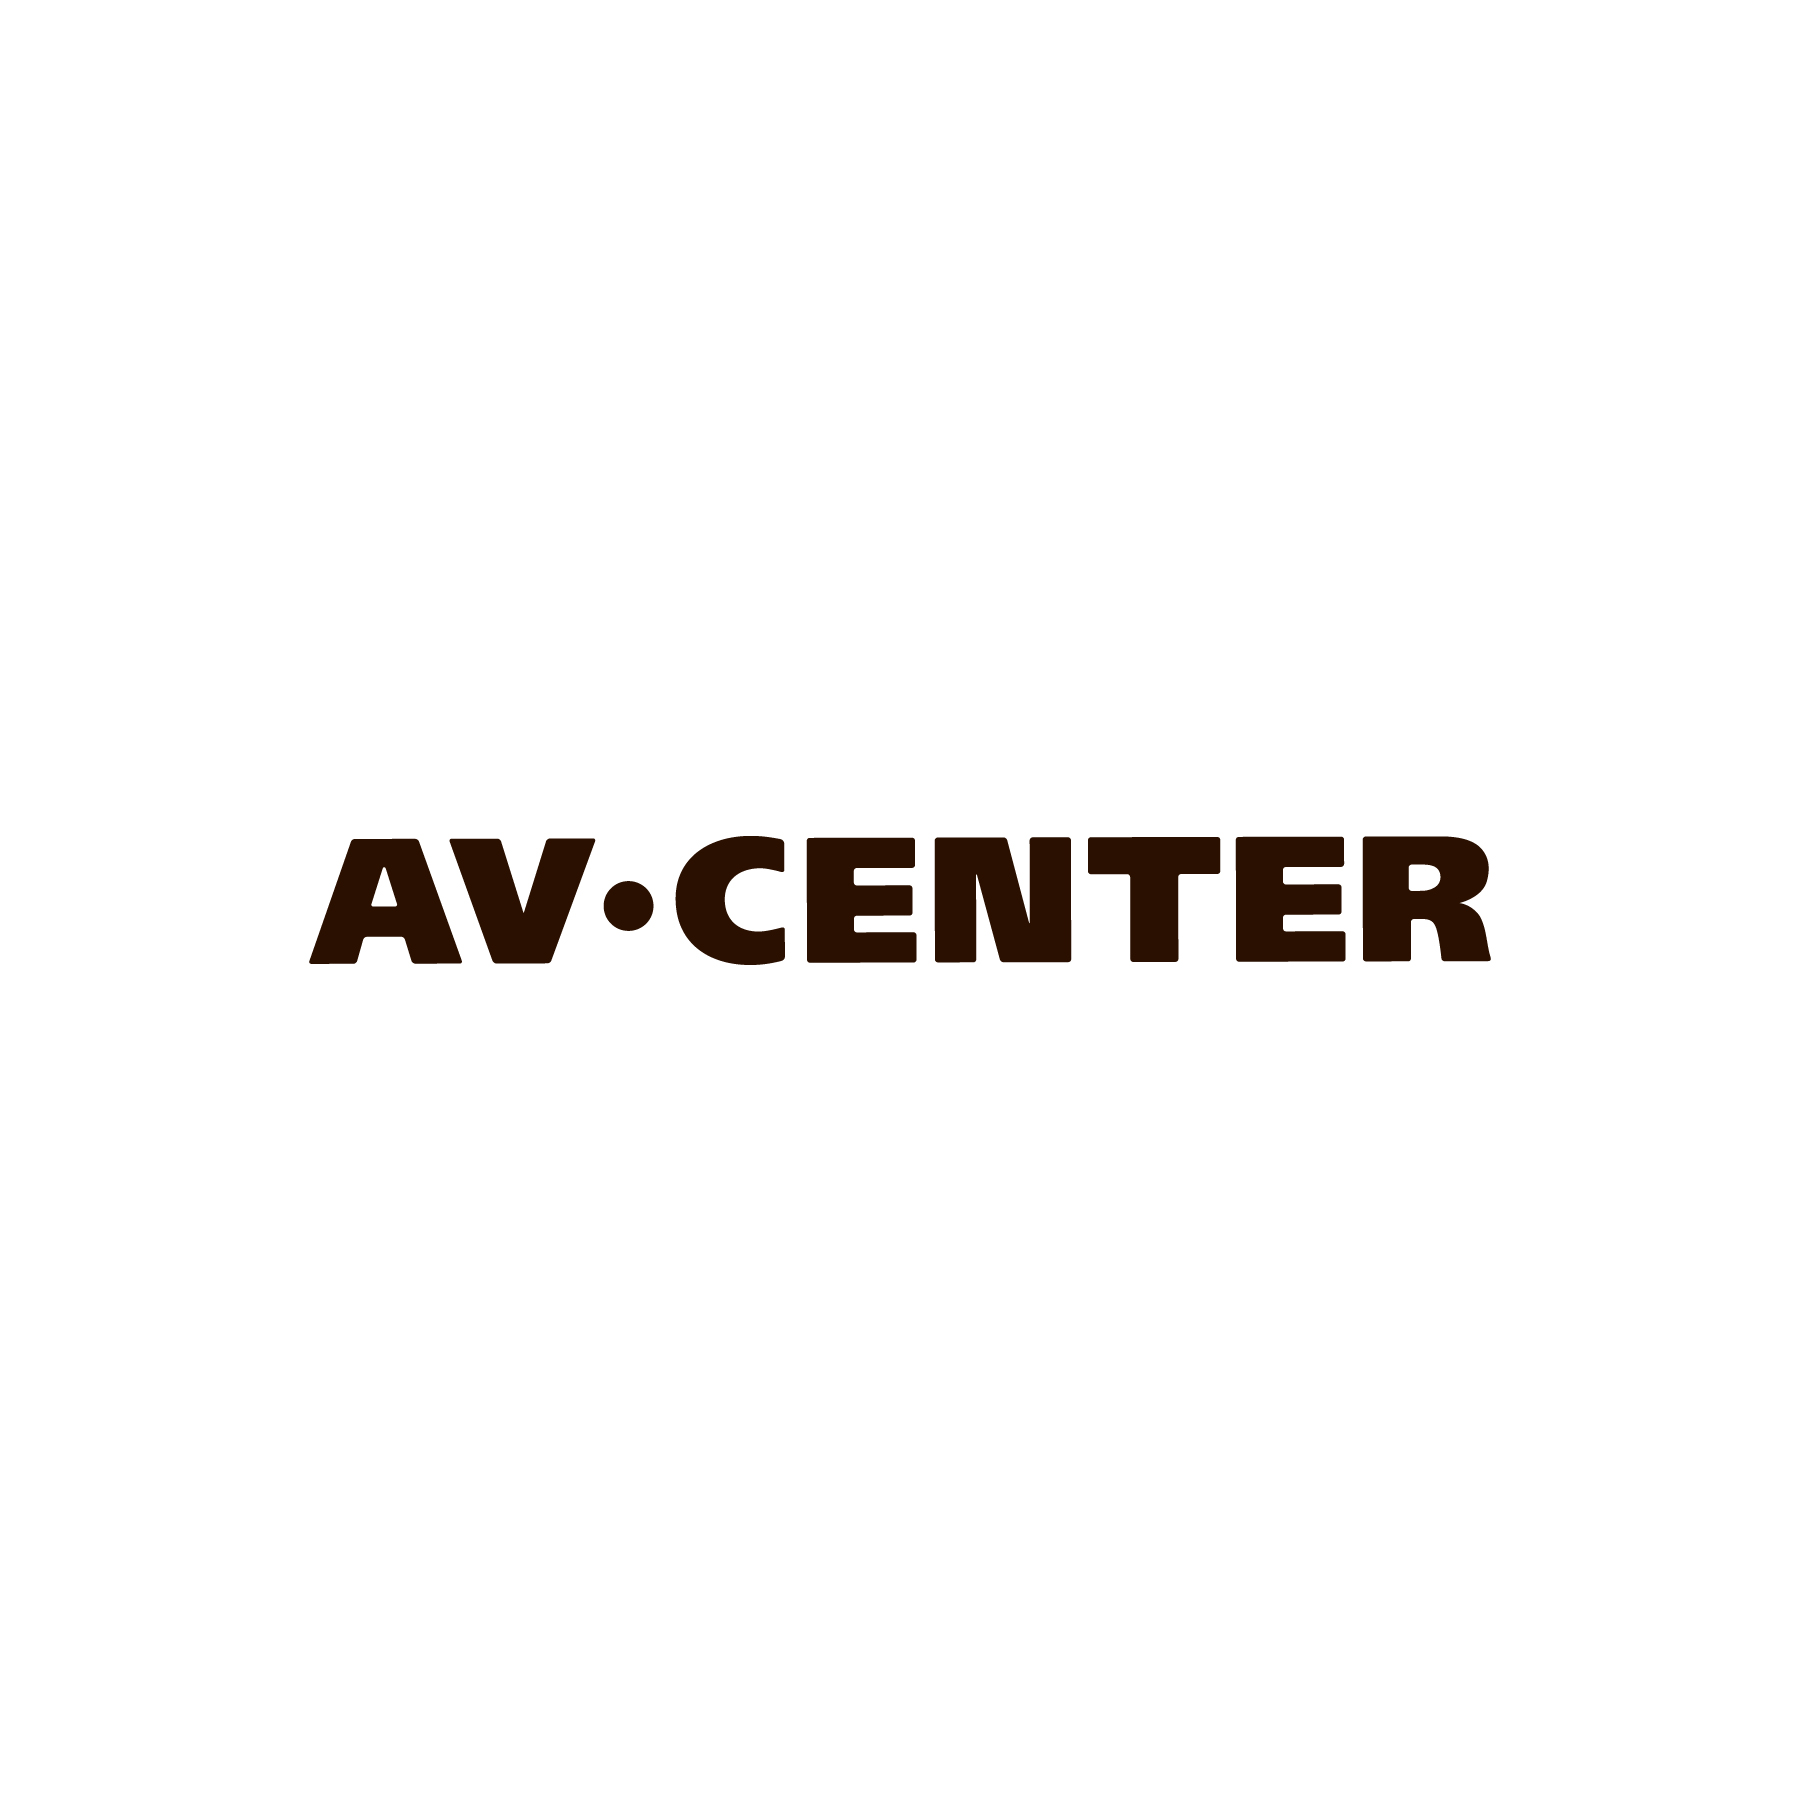 AV CENTER er ny Business Plus partner